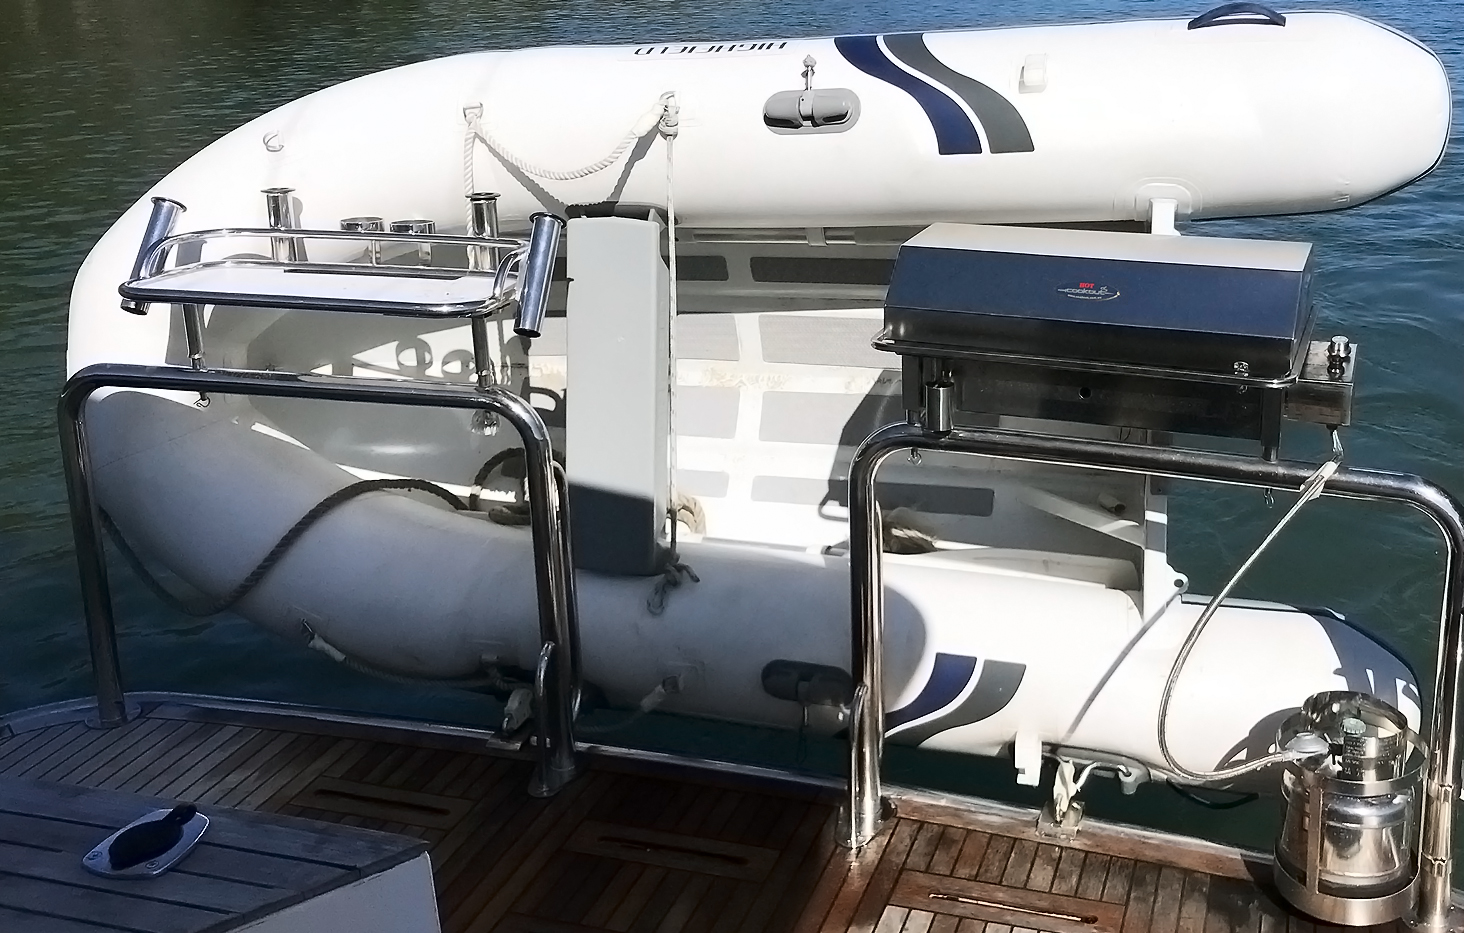 Gas stainless steel boat BBQ Australia